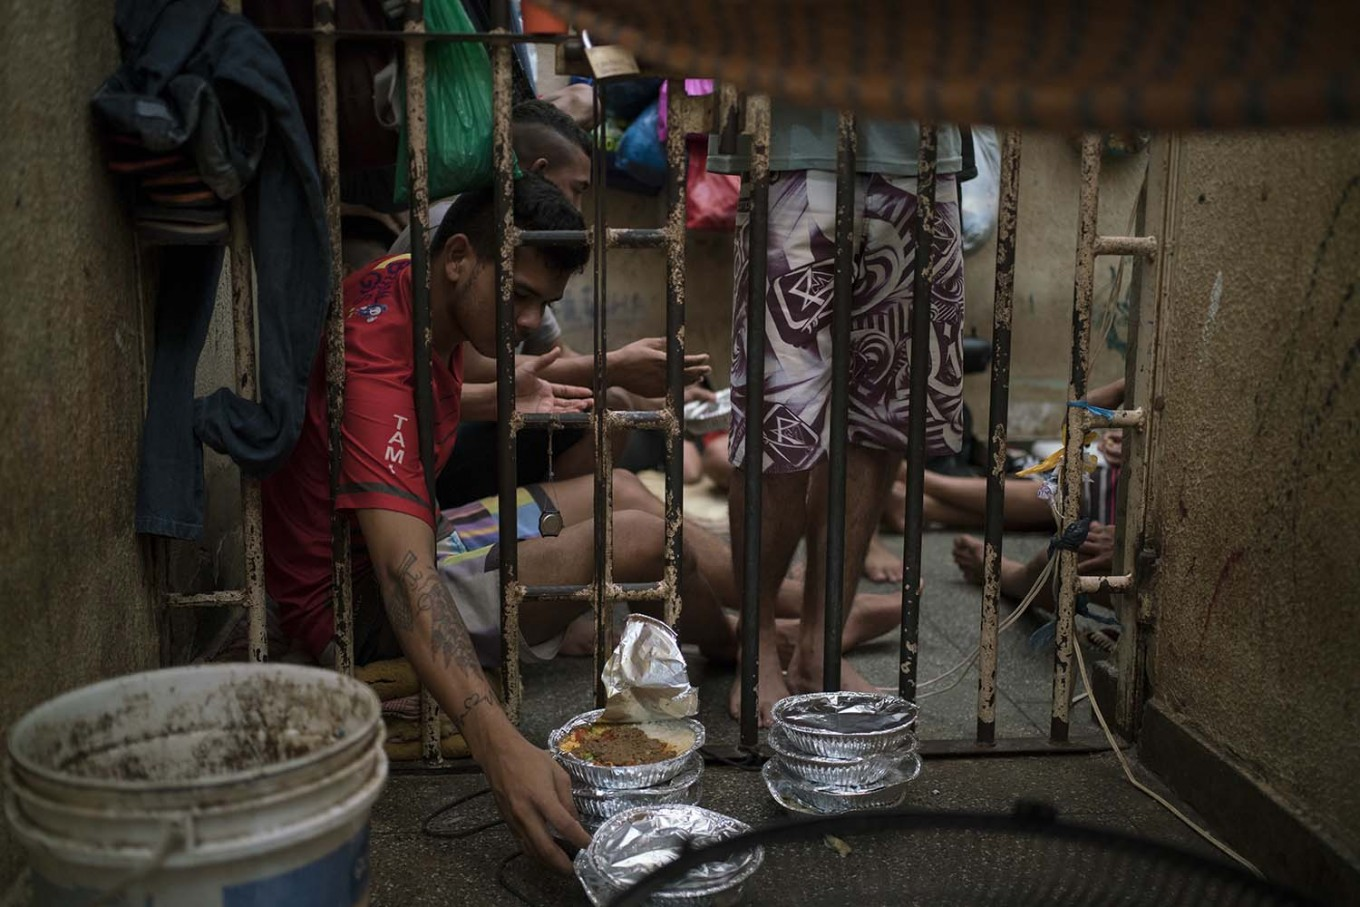 In this Feb. 6, 2017 photo, an inmate reaches for a plate of food during lunchtime inside an overcrowded cell at a police station near Manaus, Brazil. The business strategy of Brazilian crime gangs is to dominate overcrowded prisons, then control the streets. AP Photo/Felipe Dana